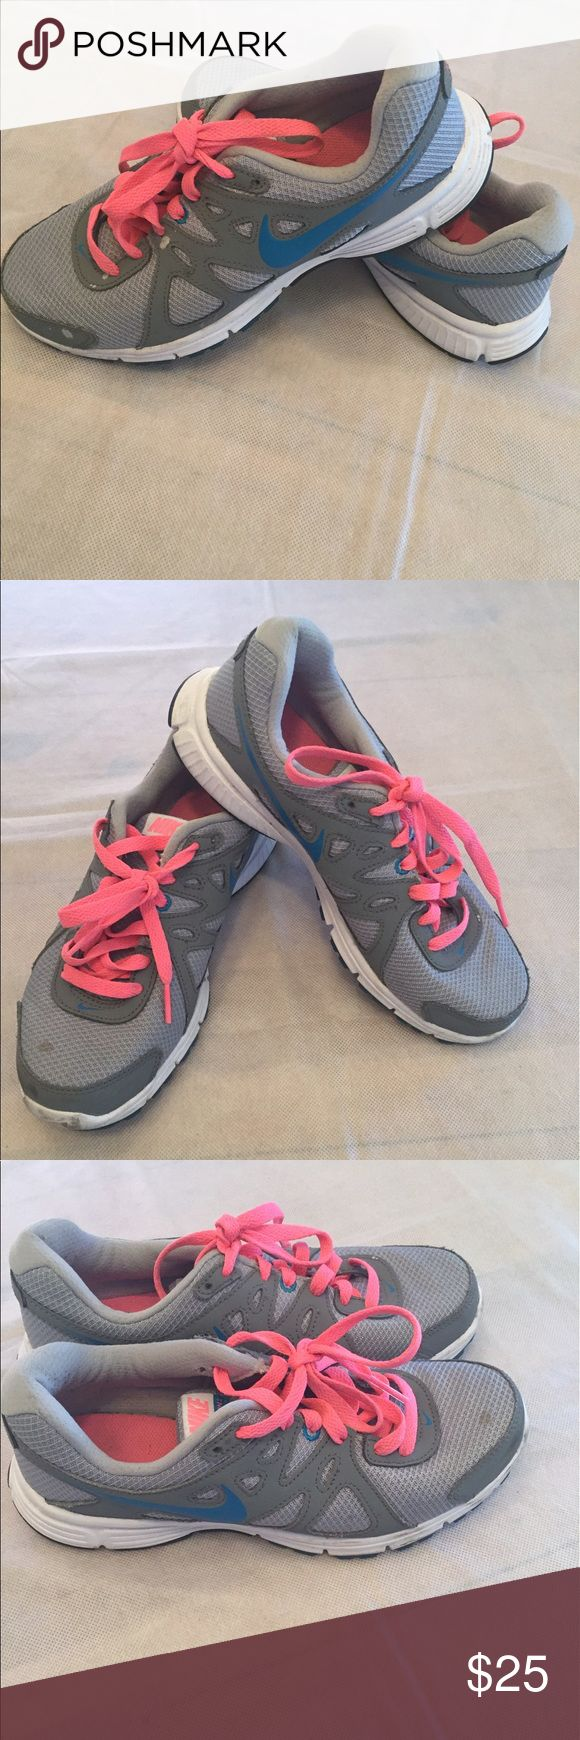 Preowned Nike running shoes This preowned running shoes a still in great condition. No tears. All bundle buys get 20% discount Nike Shoes Athletic Shoes